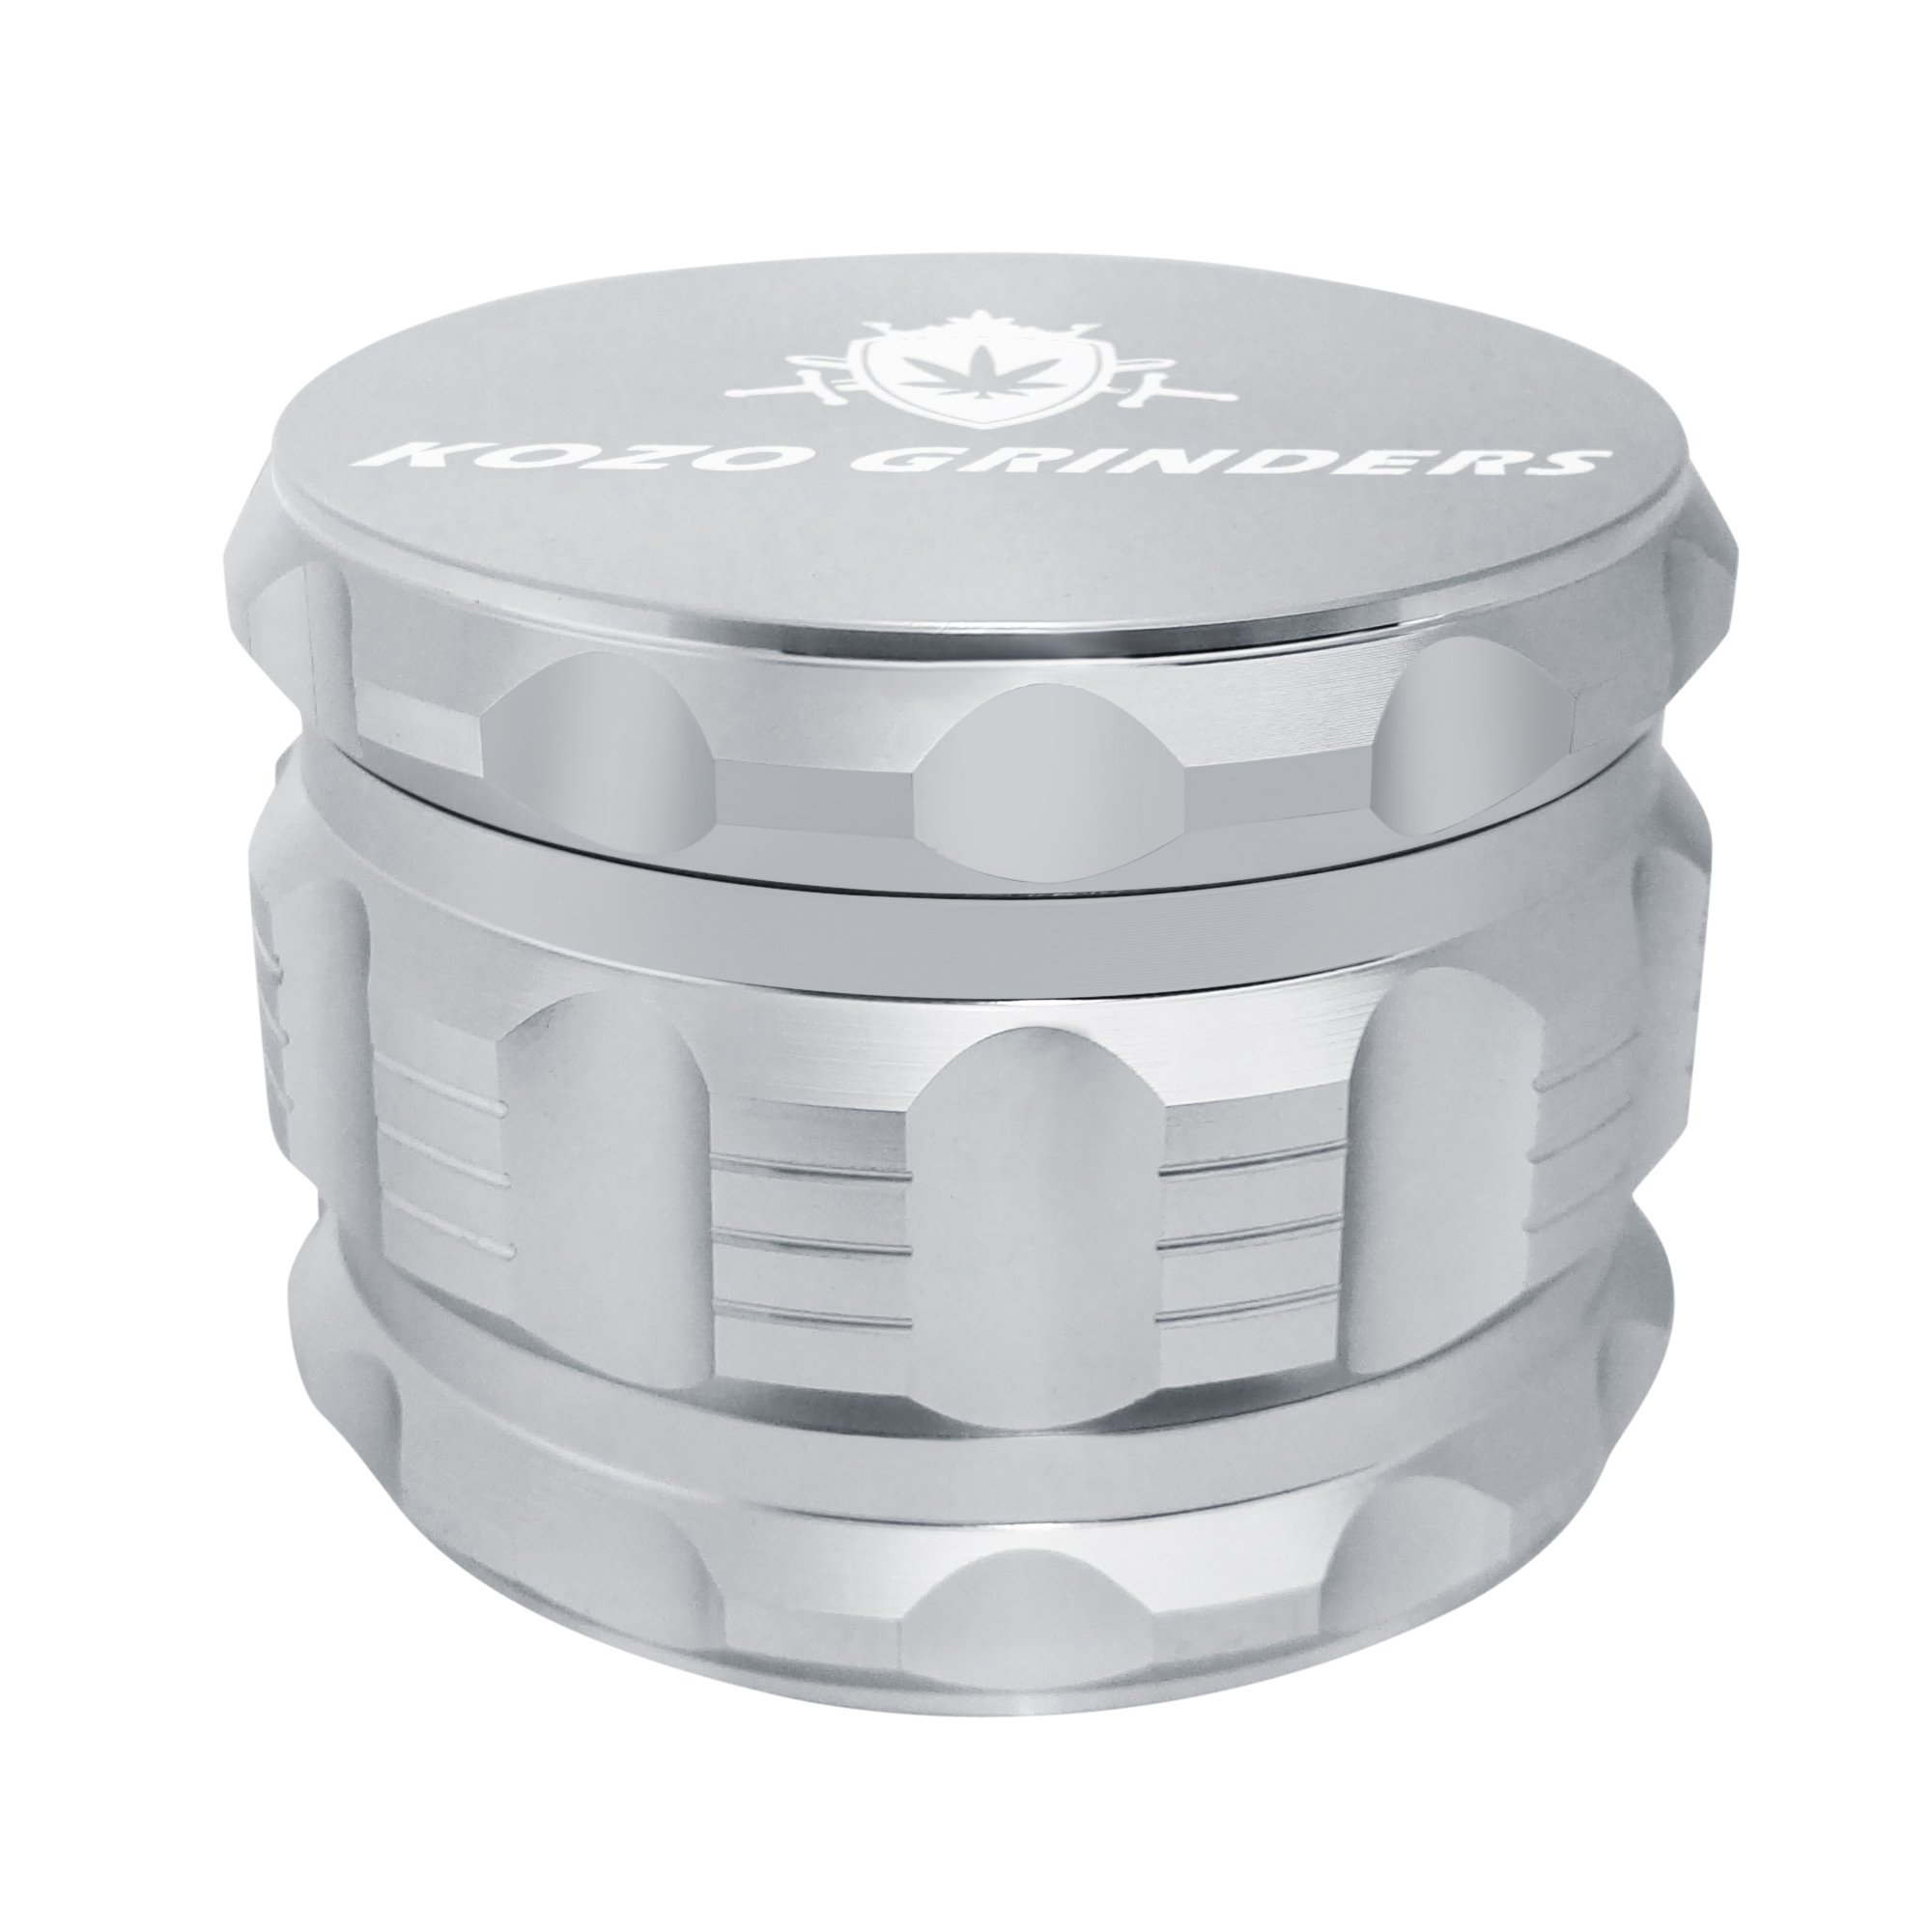 [Upgraded Version] Best Herb Grinder By Kozo Grinders. Large 4 Piece, 2.5'' Silver Aluminium.